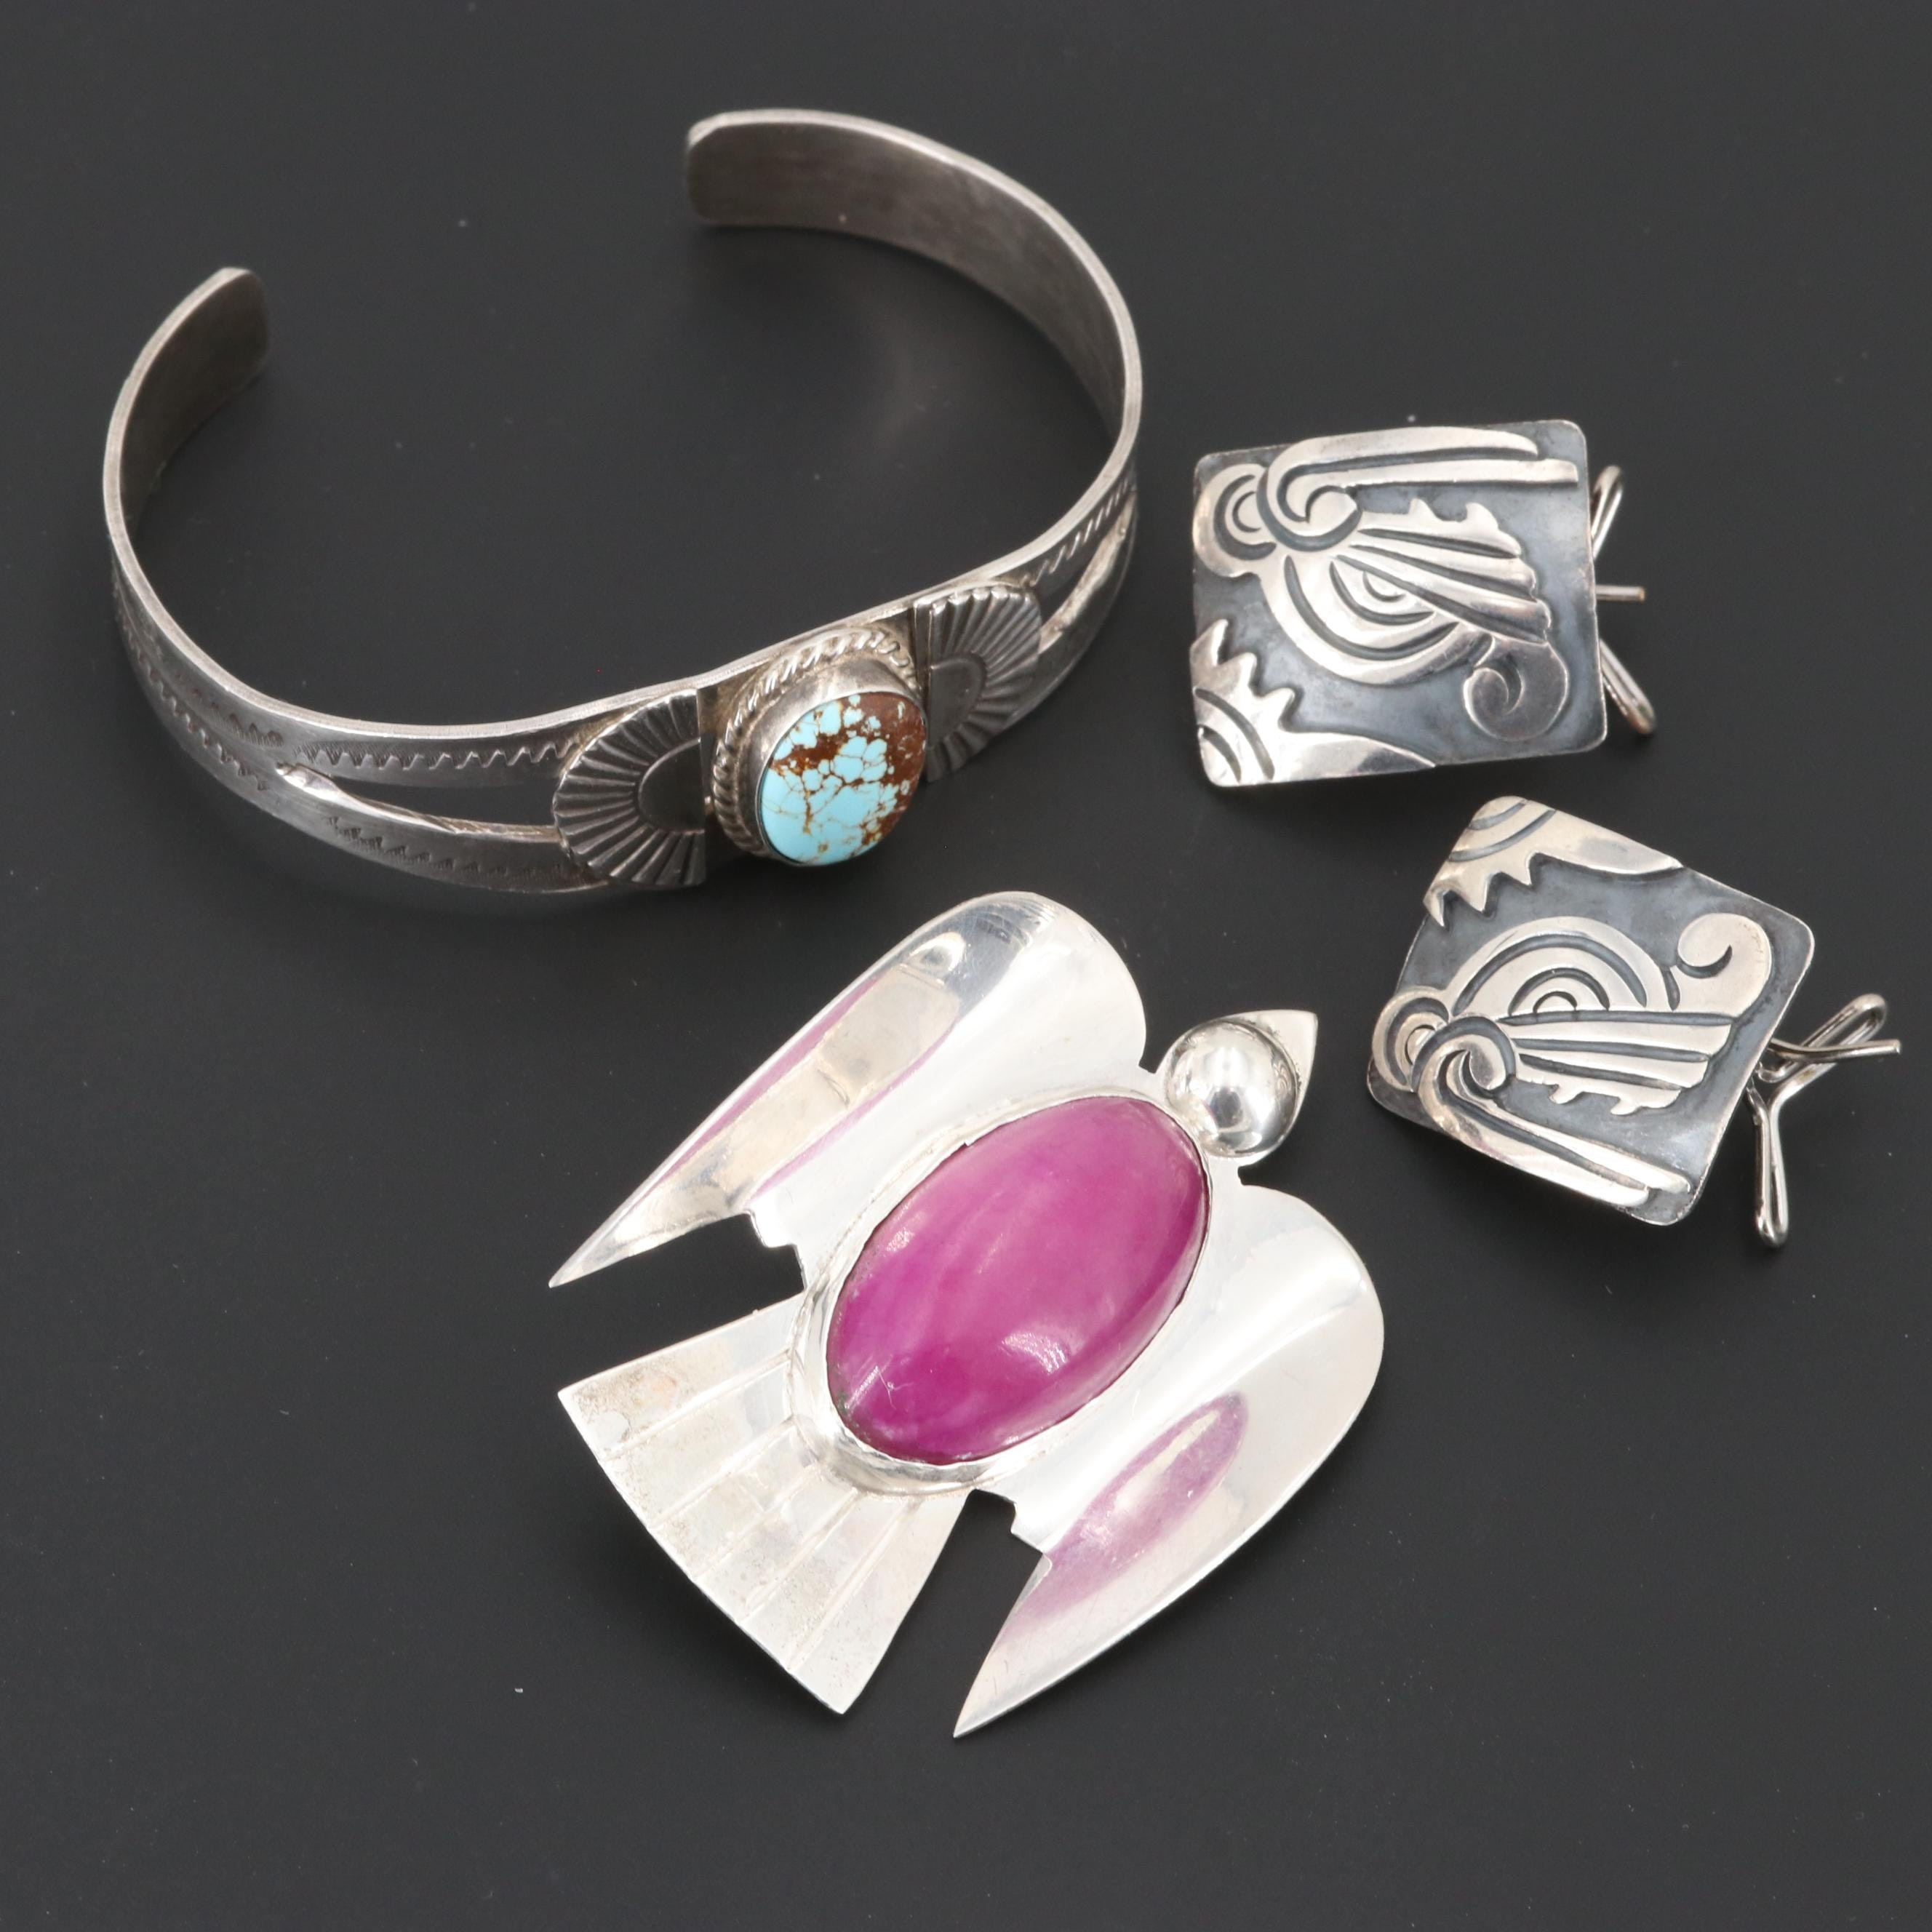 Mexican Sterling Silver Turquoise and Calcite Bracelet, Brooch and Earrings